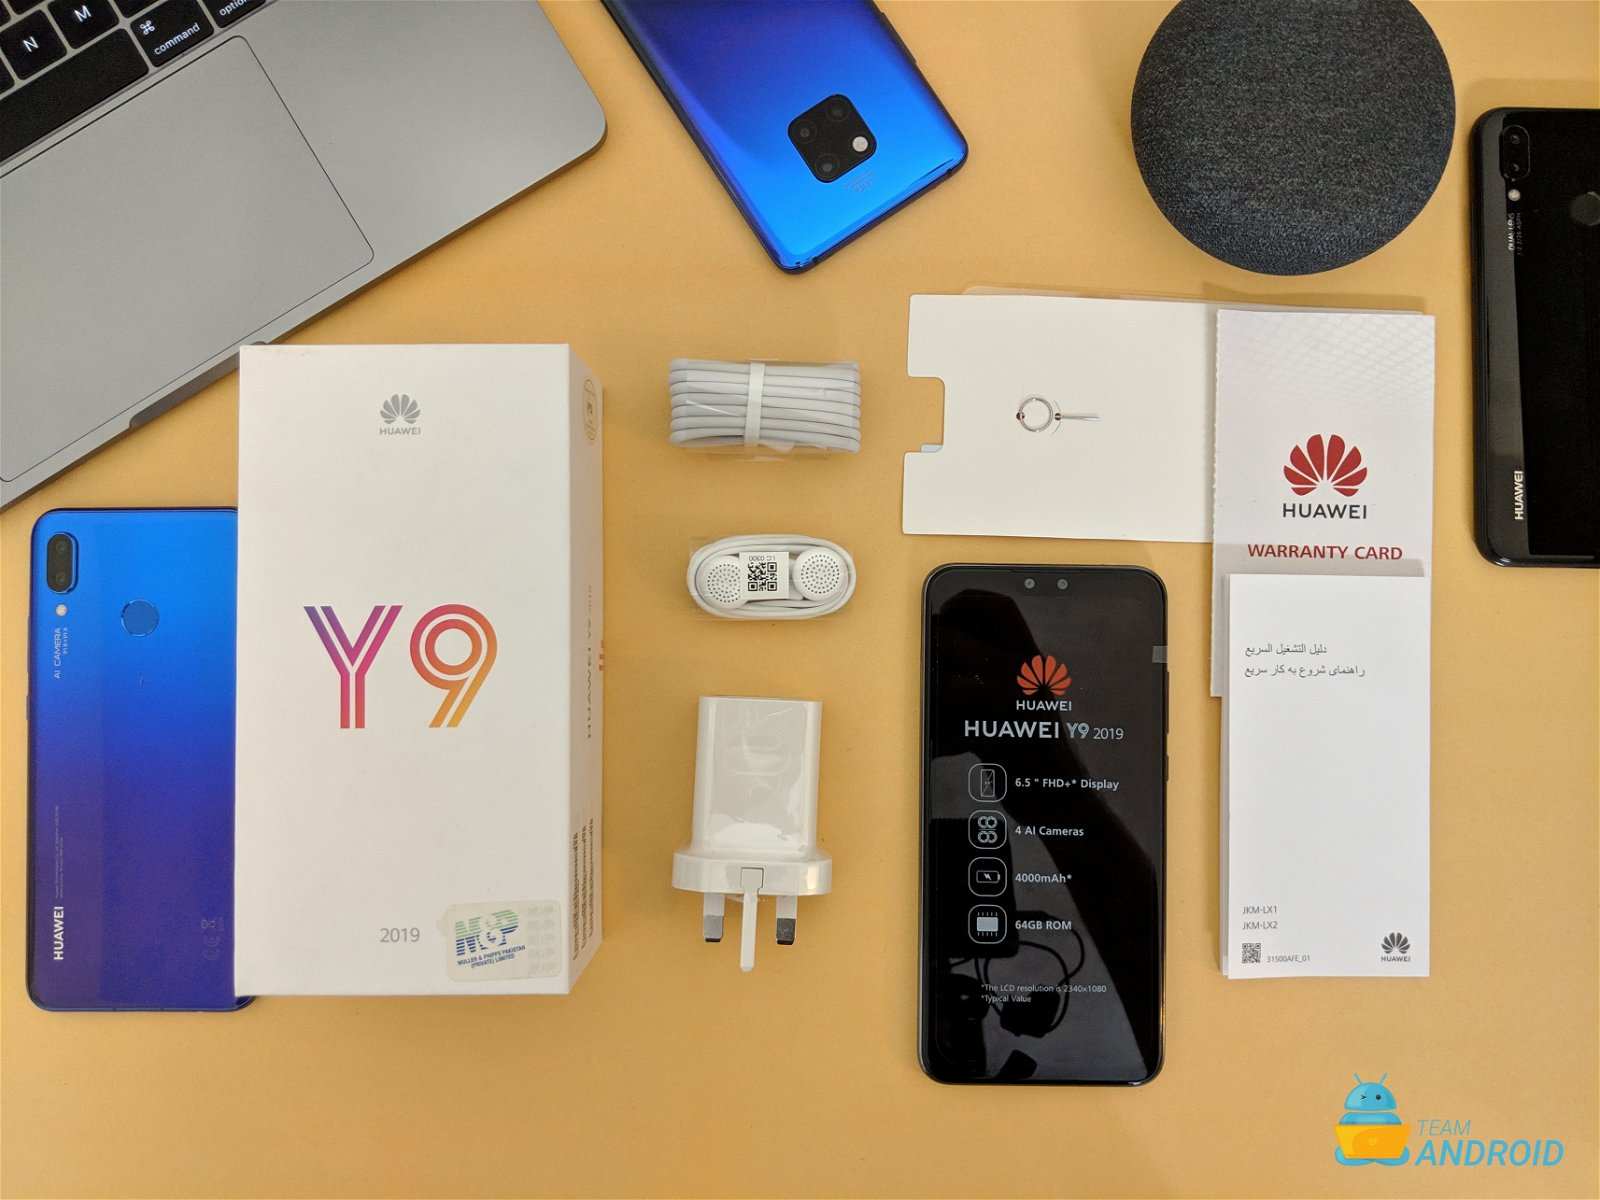 Huawei Y9 2019: Unboxing and First Impressions [Video]